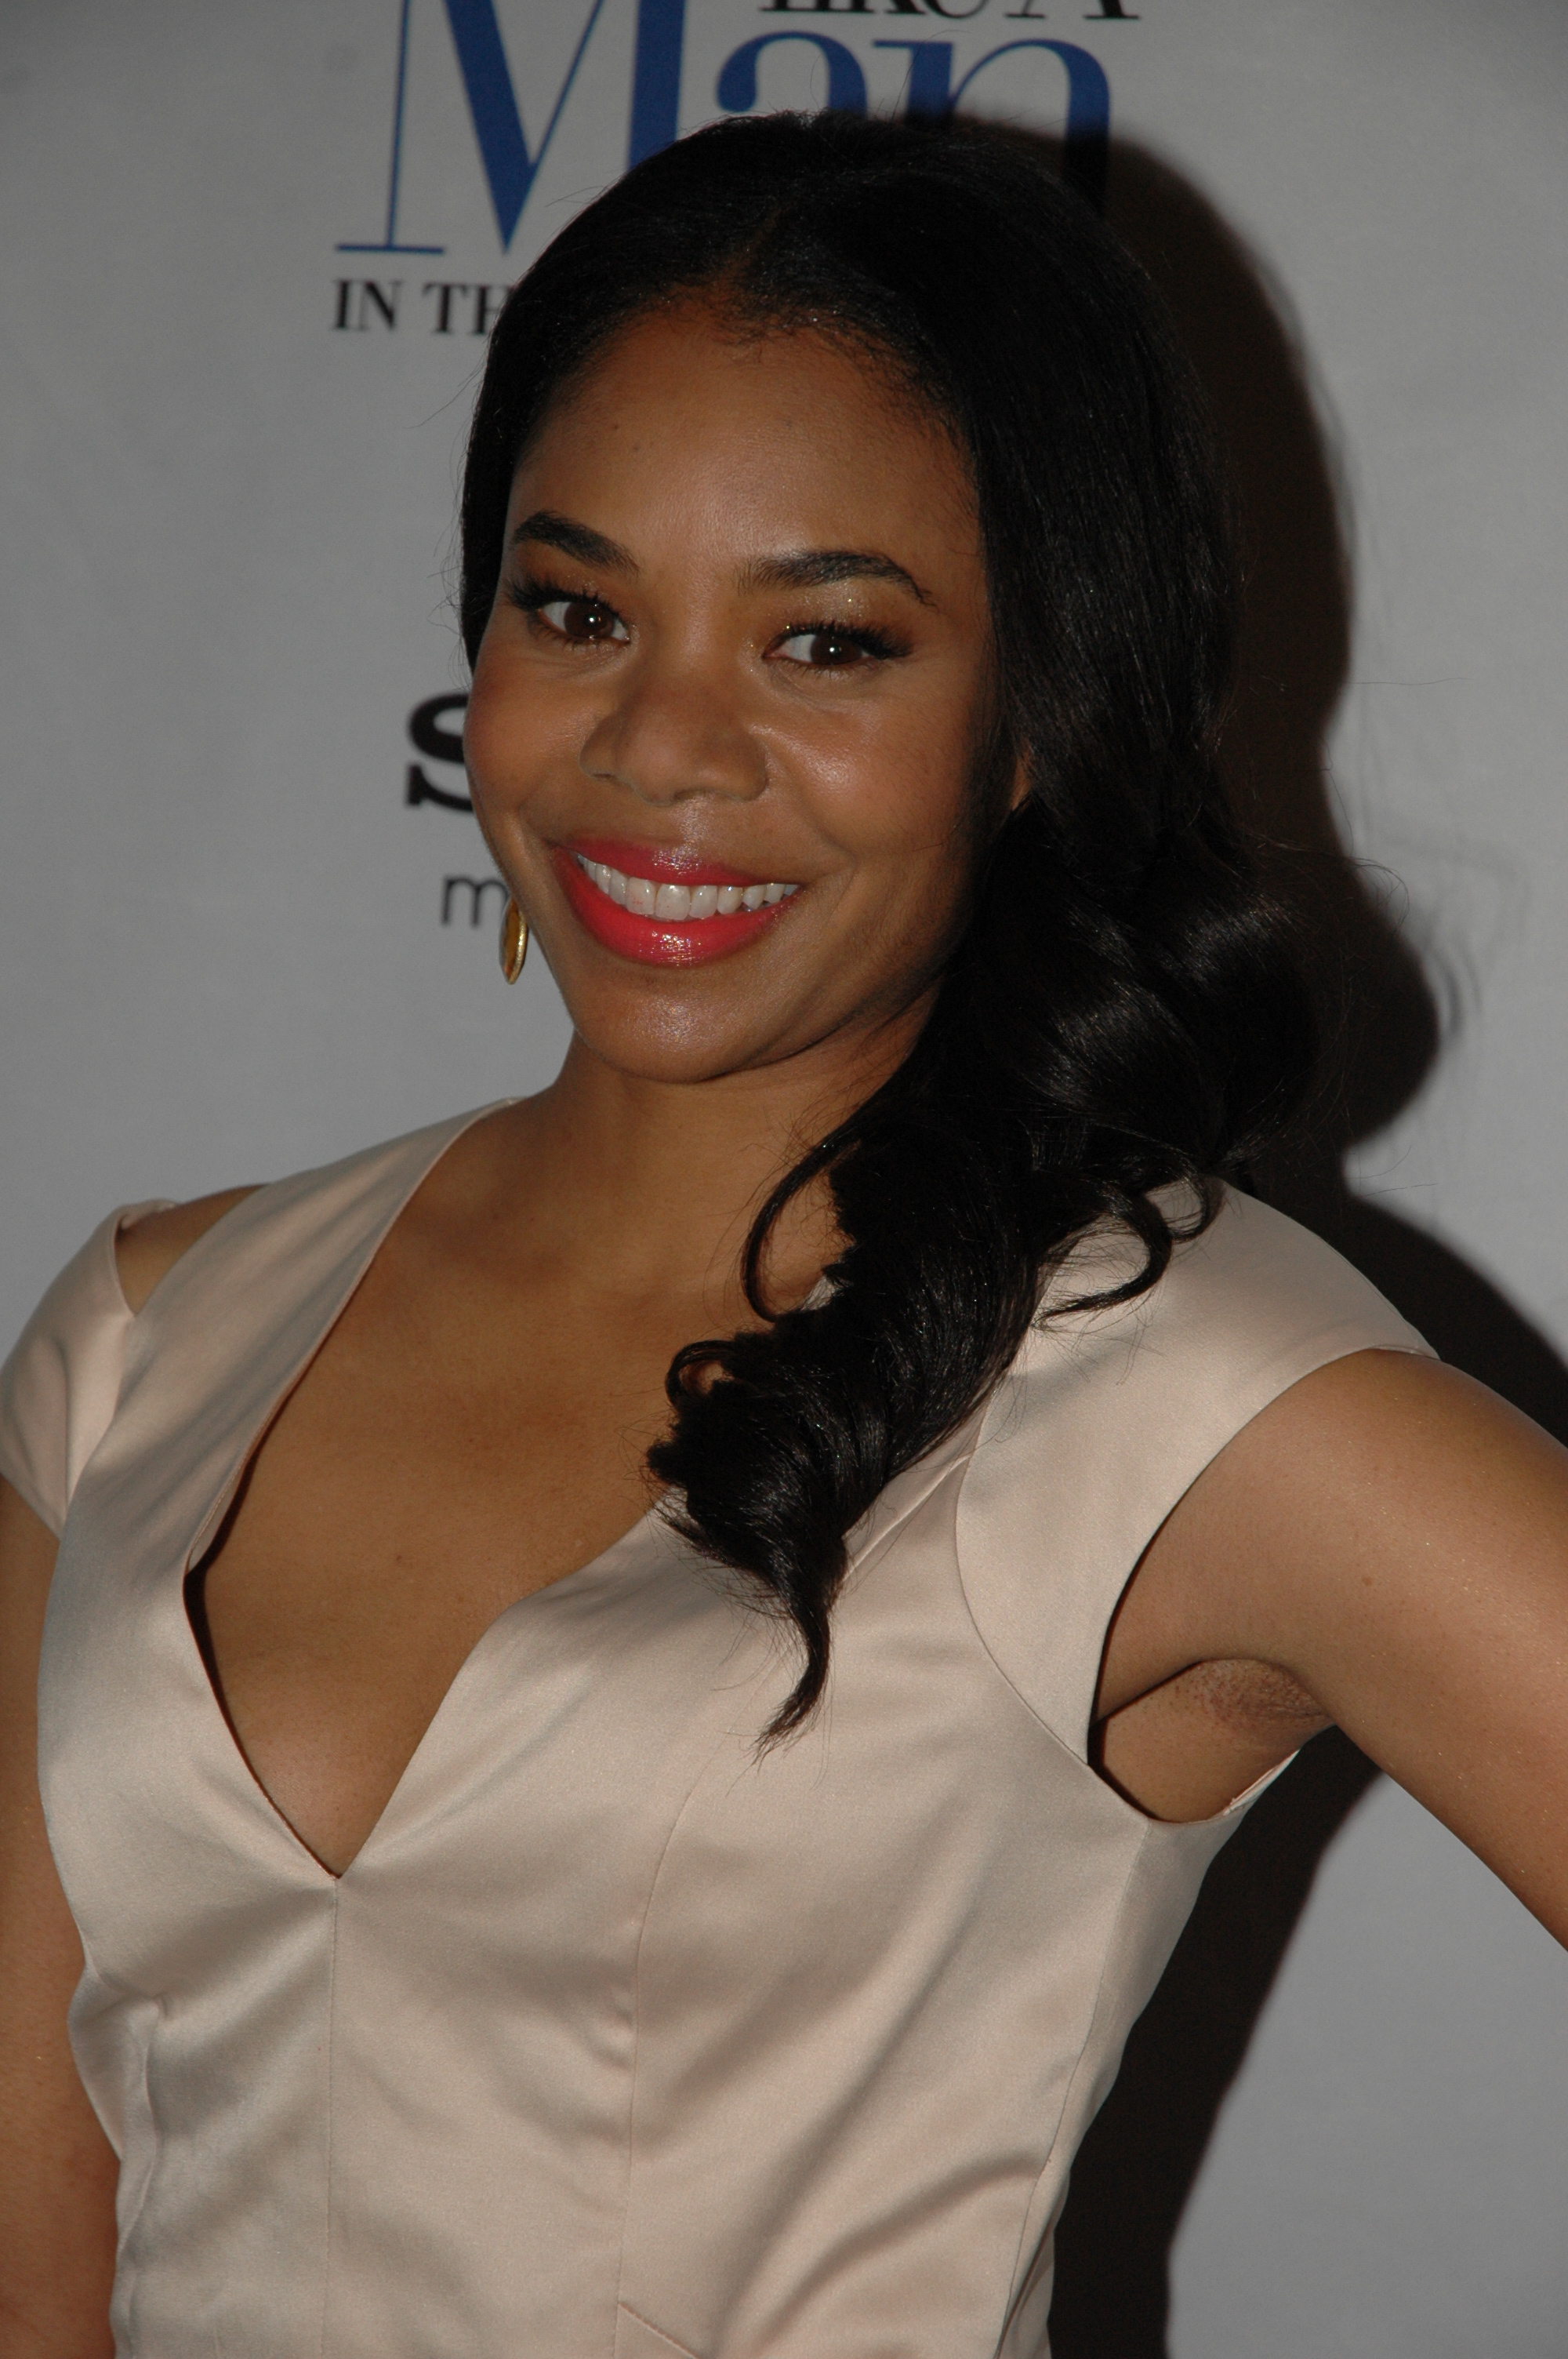 Regina Hall - Images Gallery